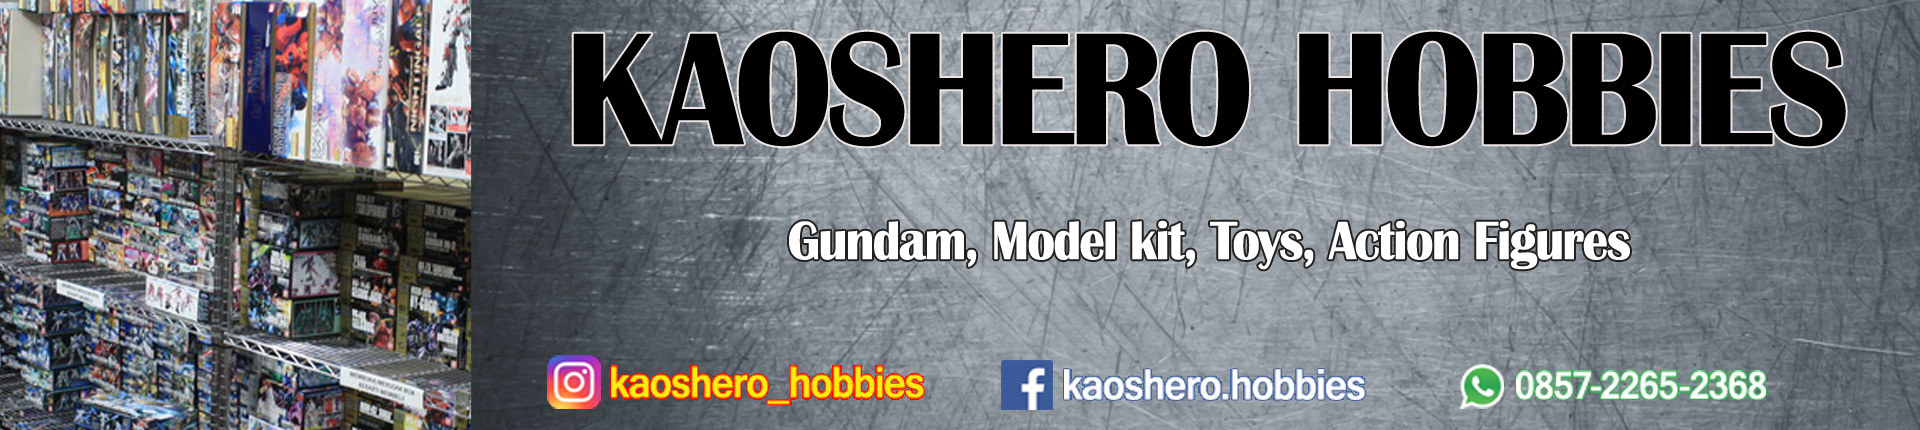 Kaoshero Hobbies Store